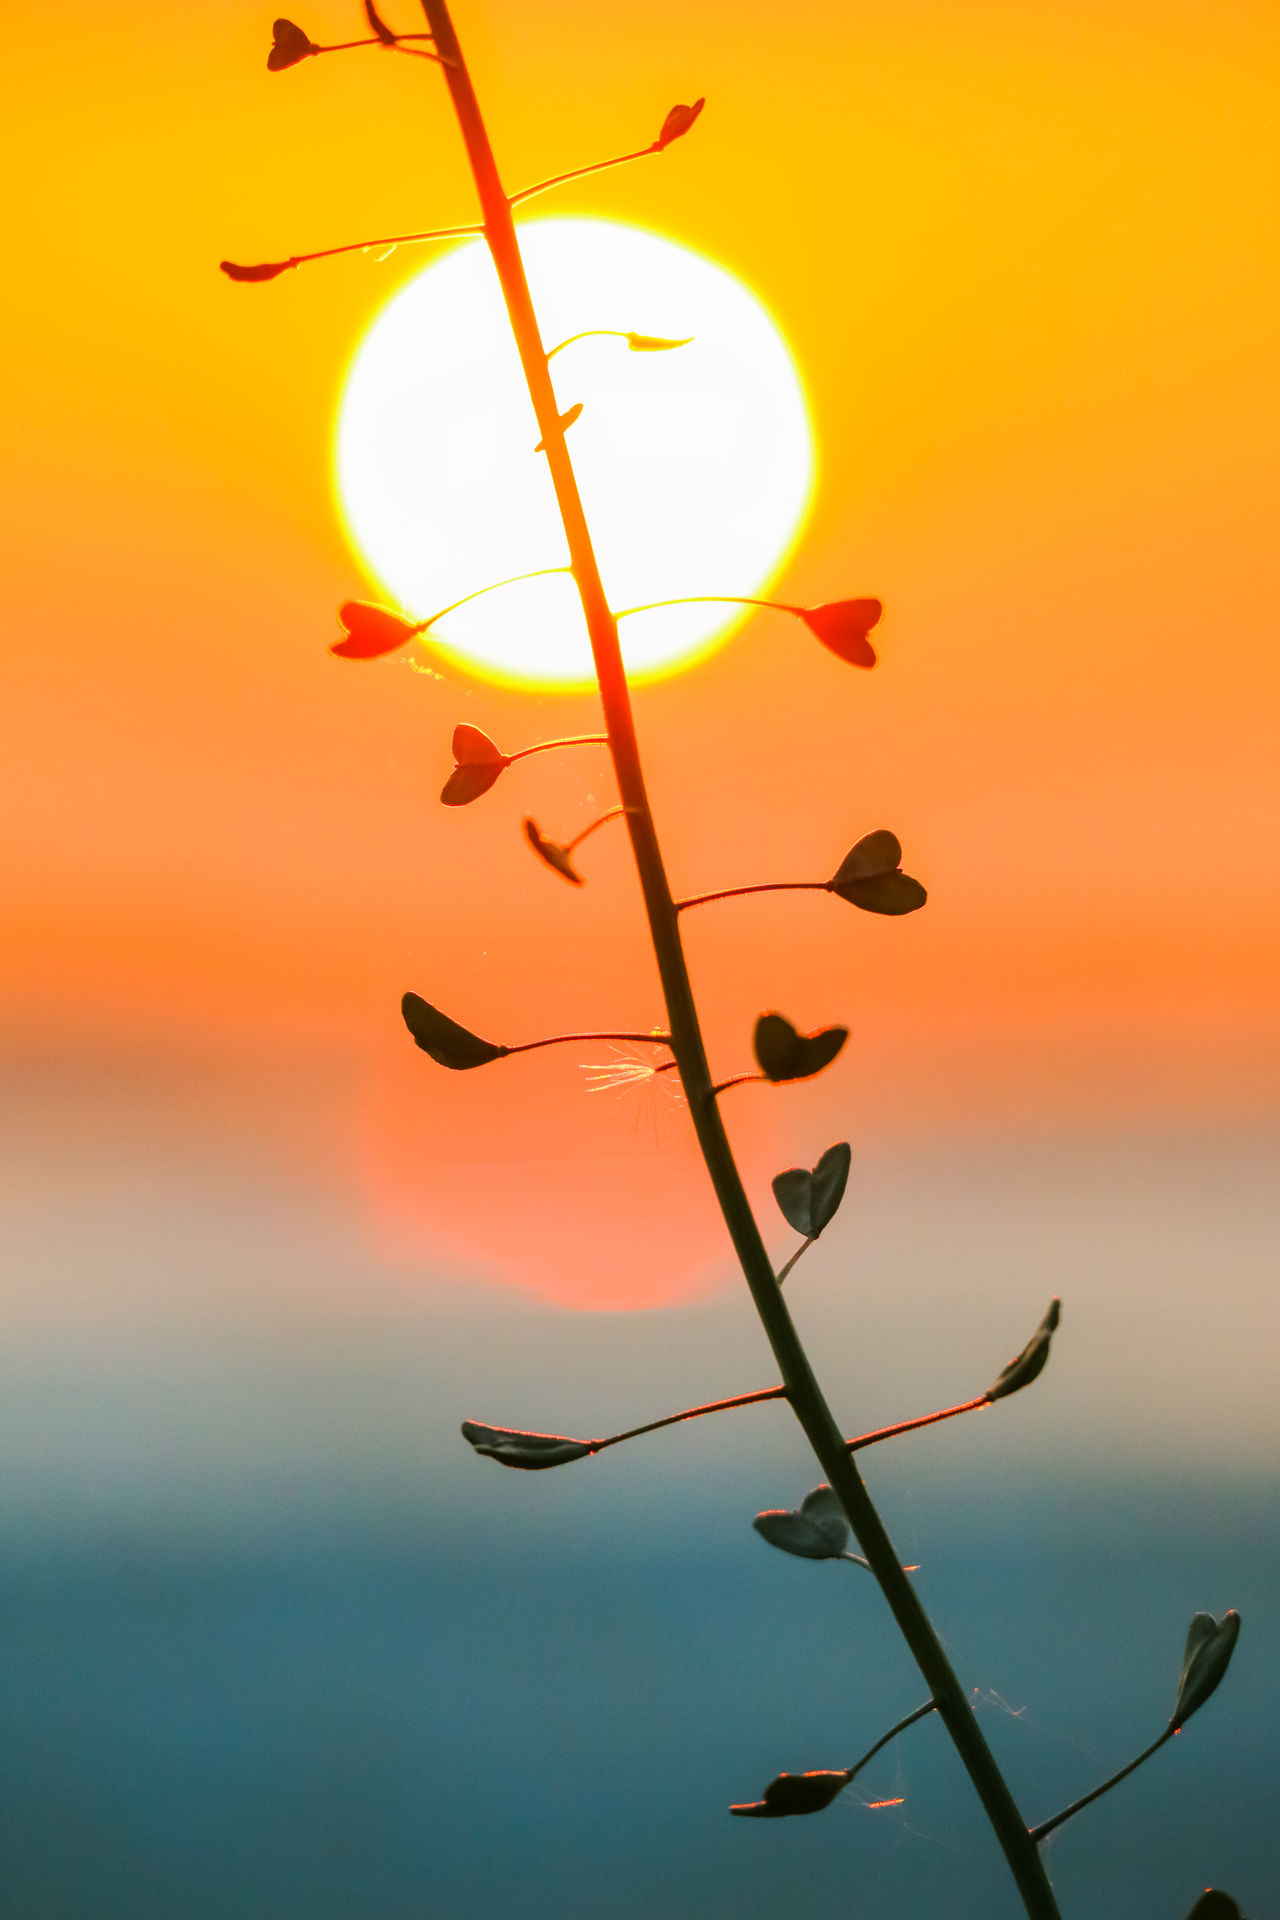 Hearts Beauty In Nature Close-up Colorful Flower Fragility Freshness Growth Heart Hearts Heartshape Leaf Love Love ♥ Nature Orange Color Outdoors Plant Silhouette Sky Sunset Sunset Silhouettes The Great Outdoors - 2017 EyeEm Awards Weed Weeds Are Beautiful Too